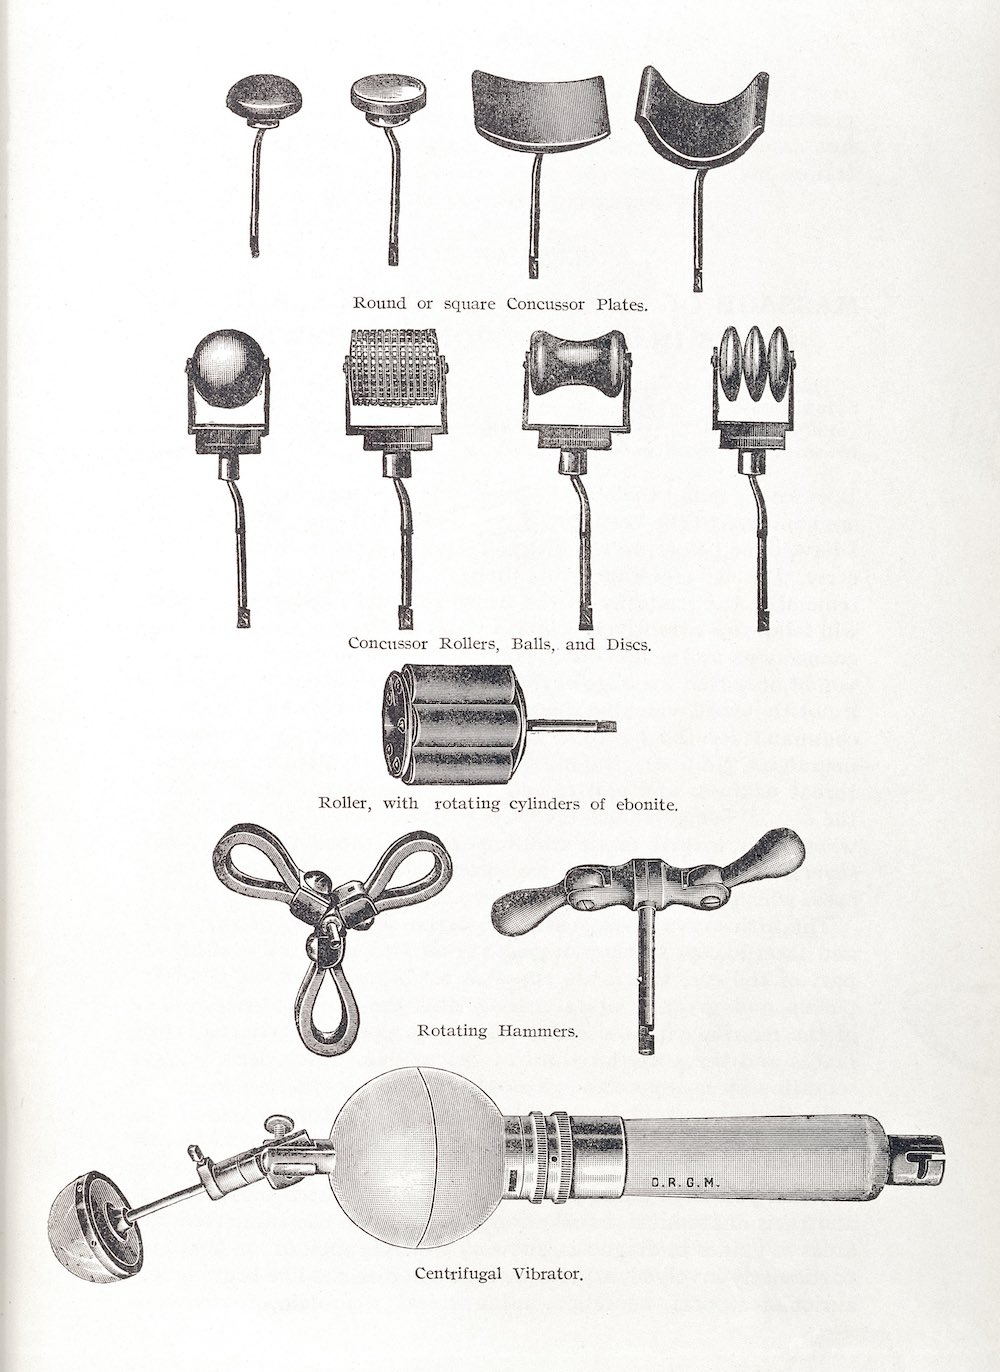 L0034214 Illustration showing various instruments